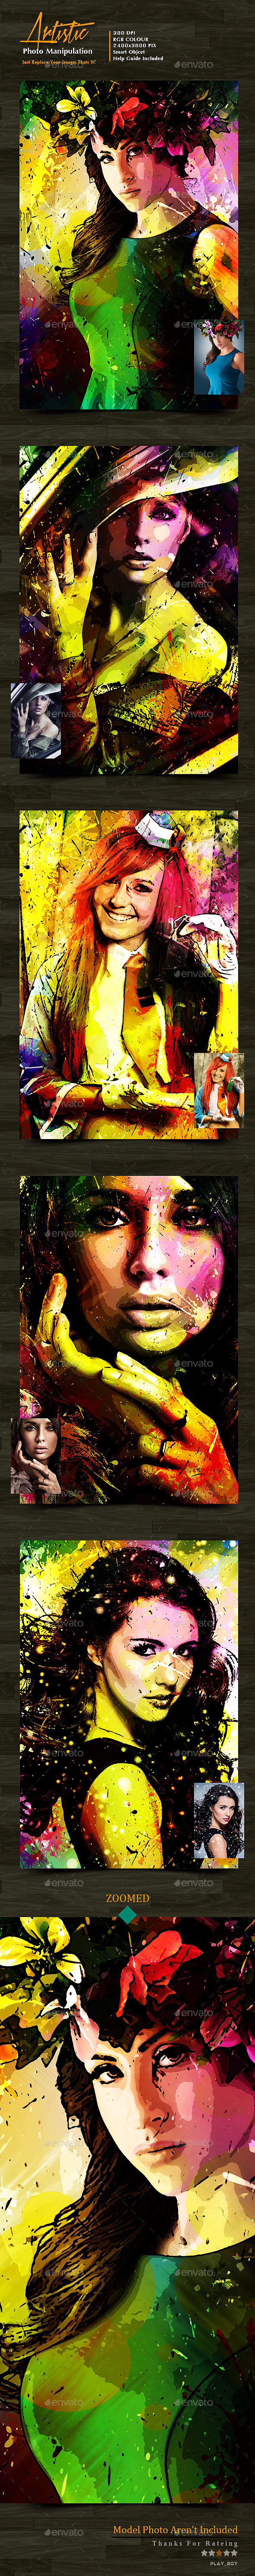 GraphicRiver Artistic Photo Manipulation Template 10287647